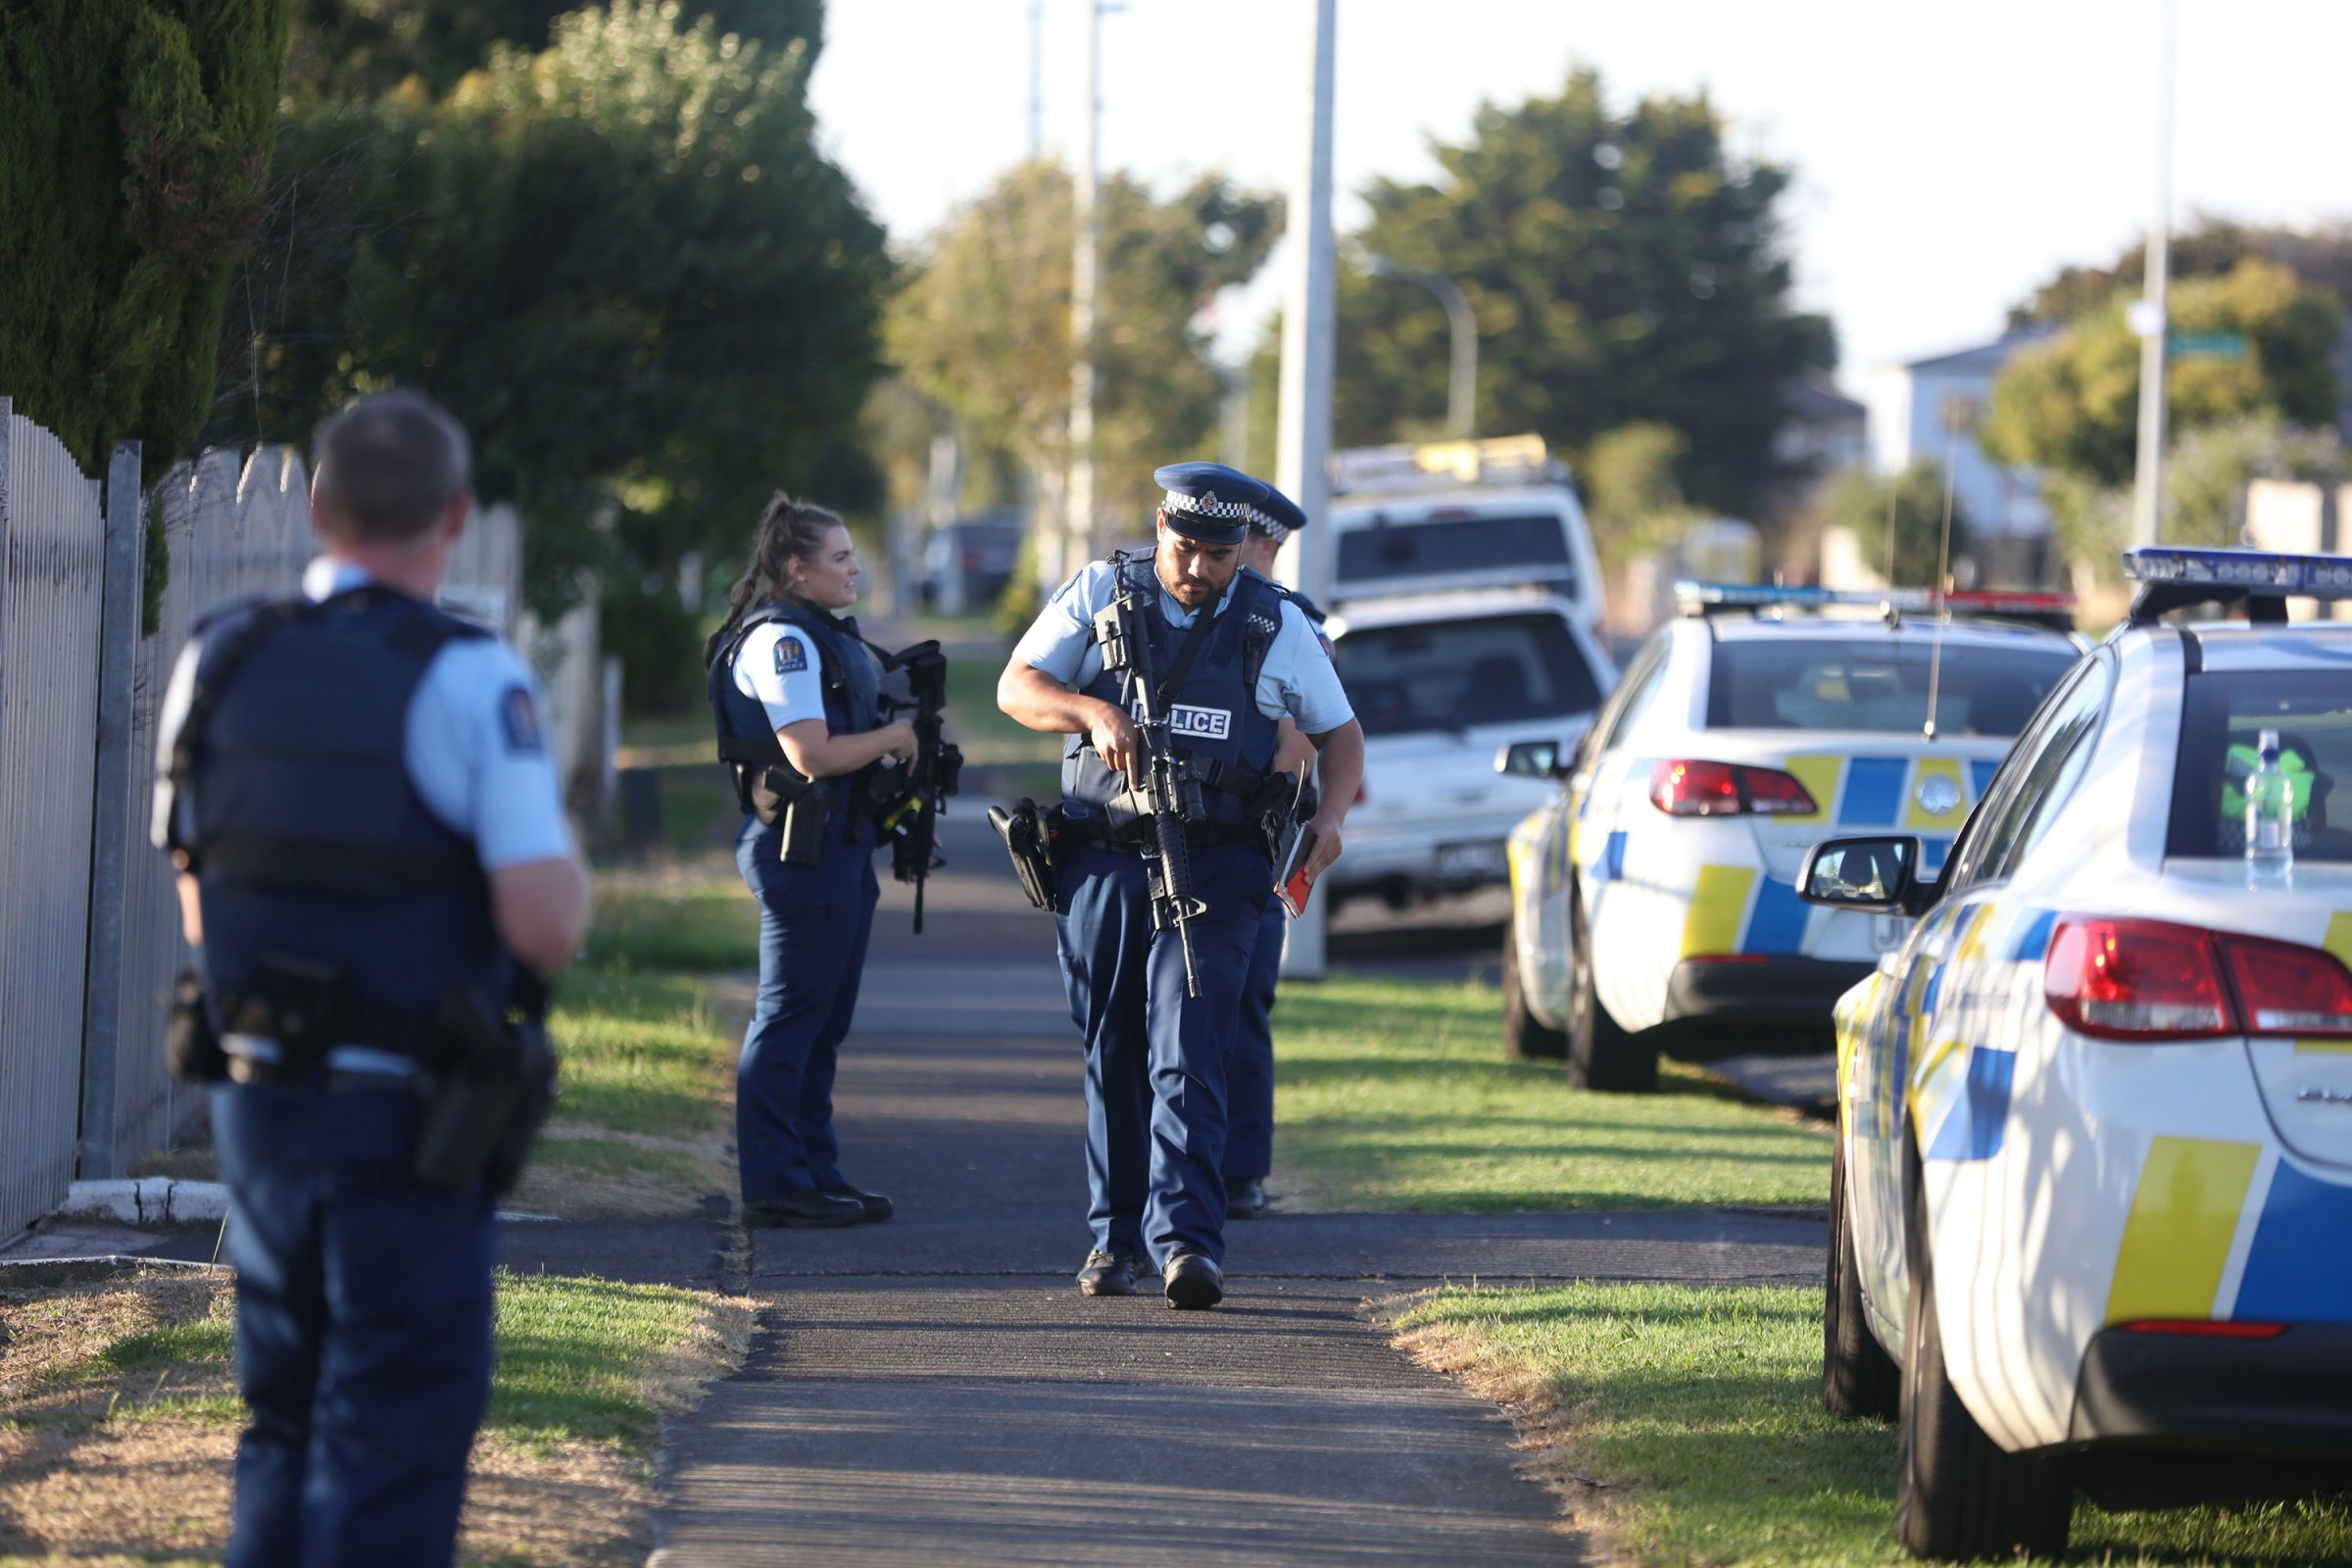 Shooting Nz Image: New Zealand Mass Shooting